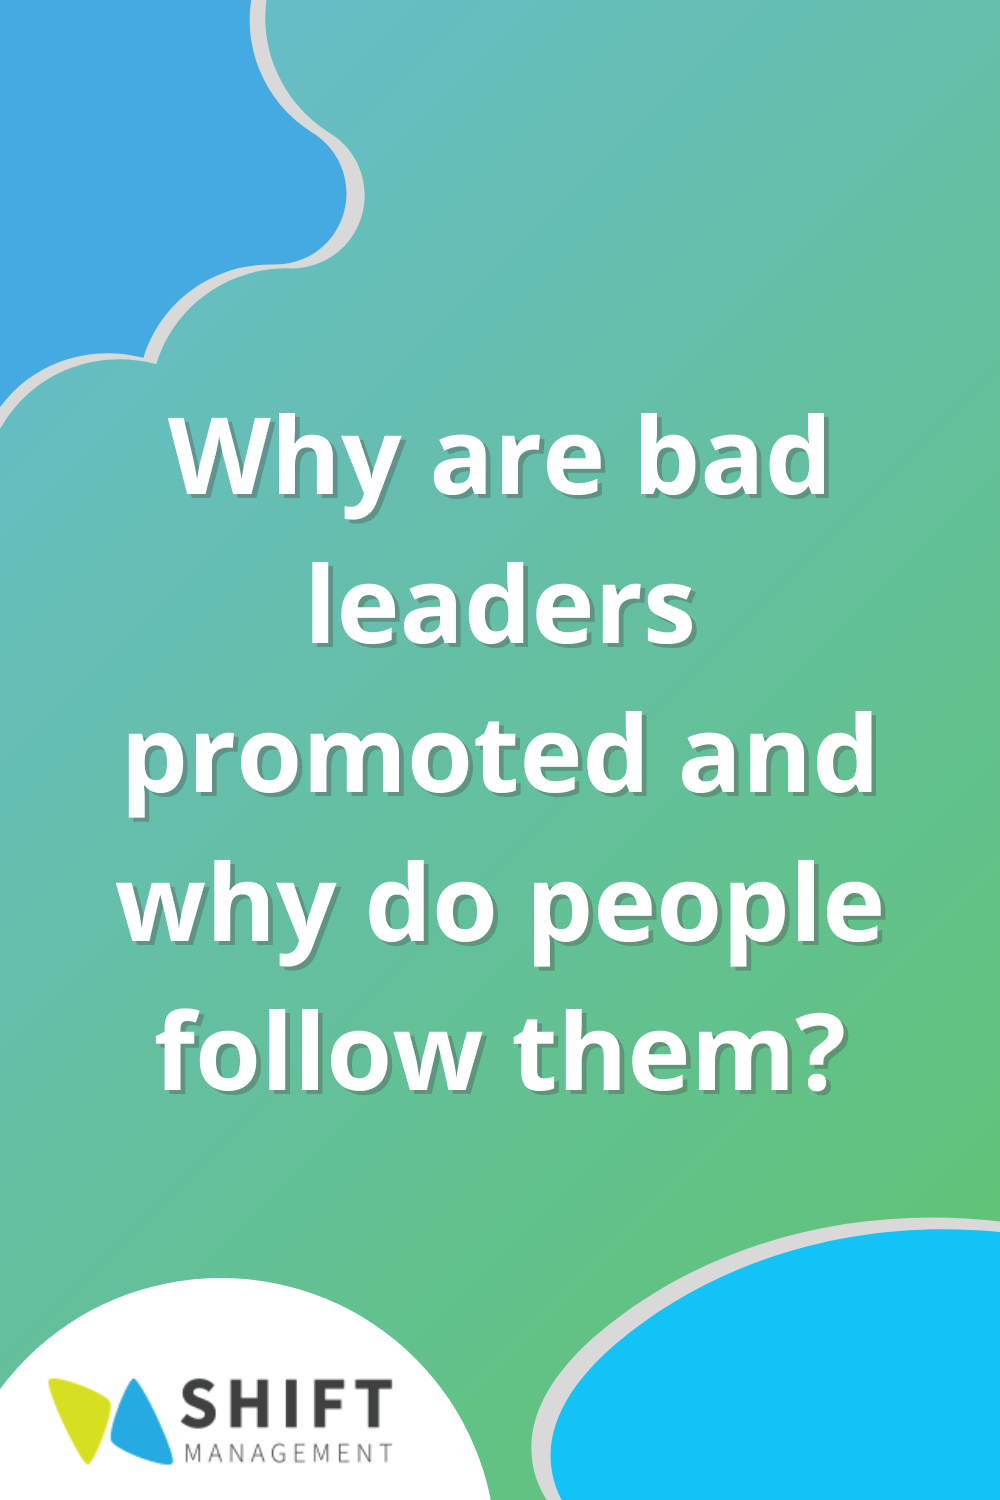 Why are bad leaders promoted and why do people follow them